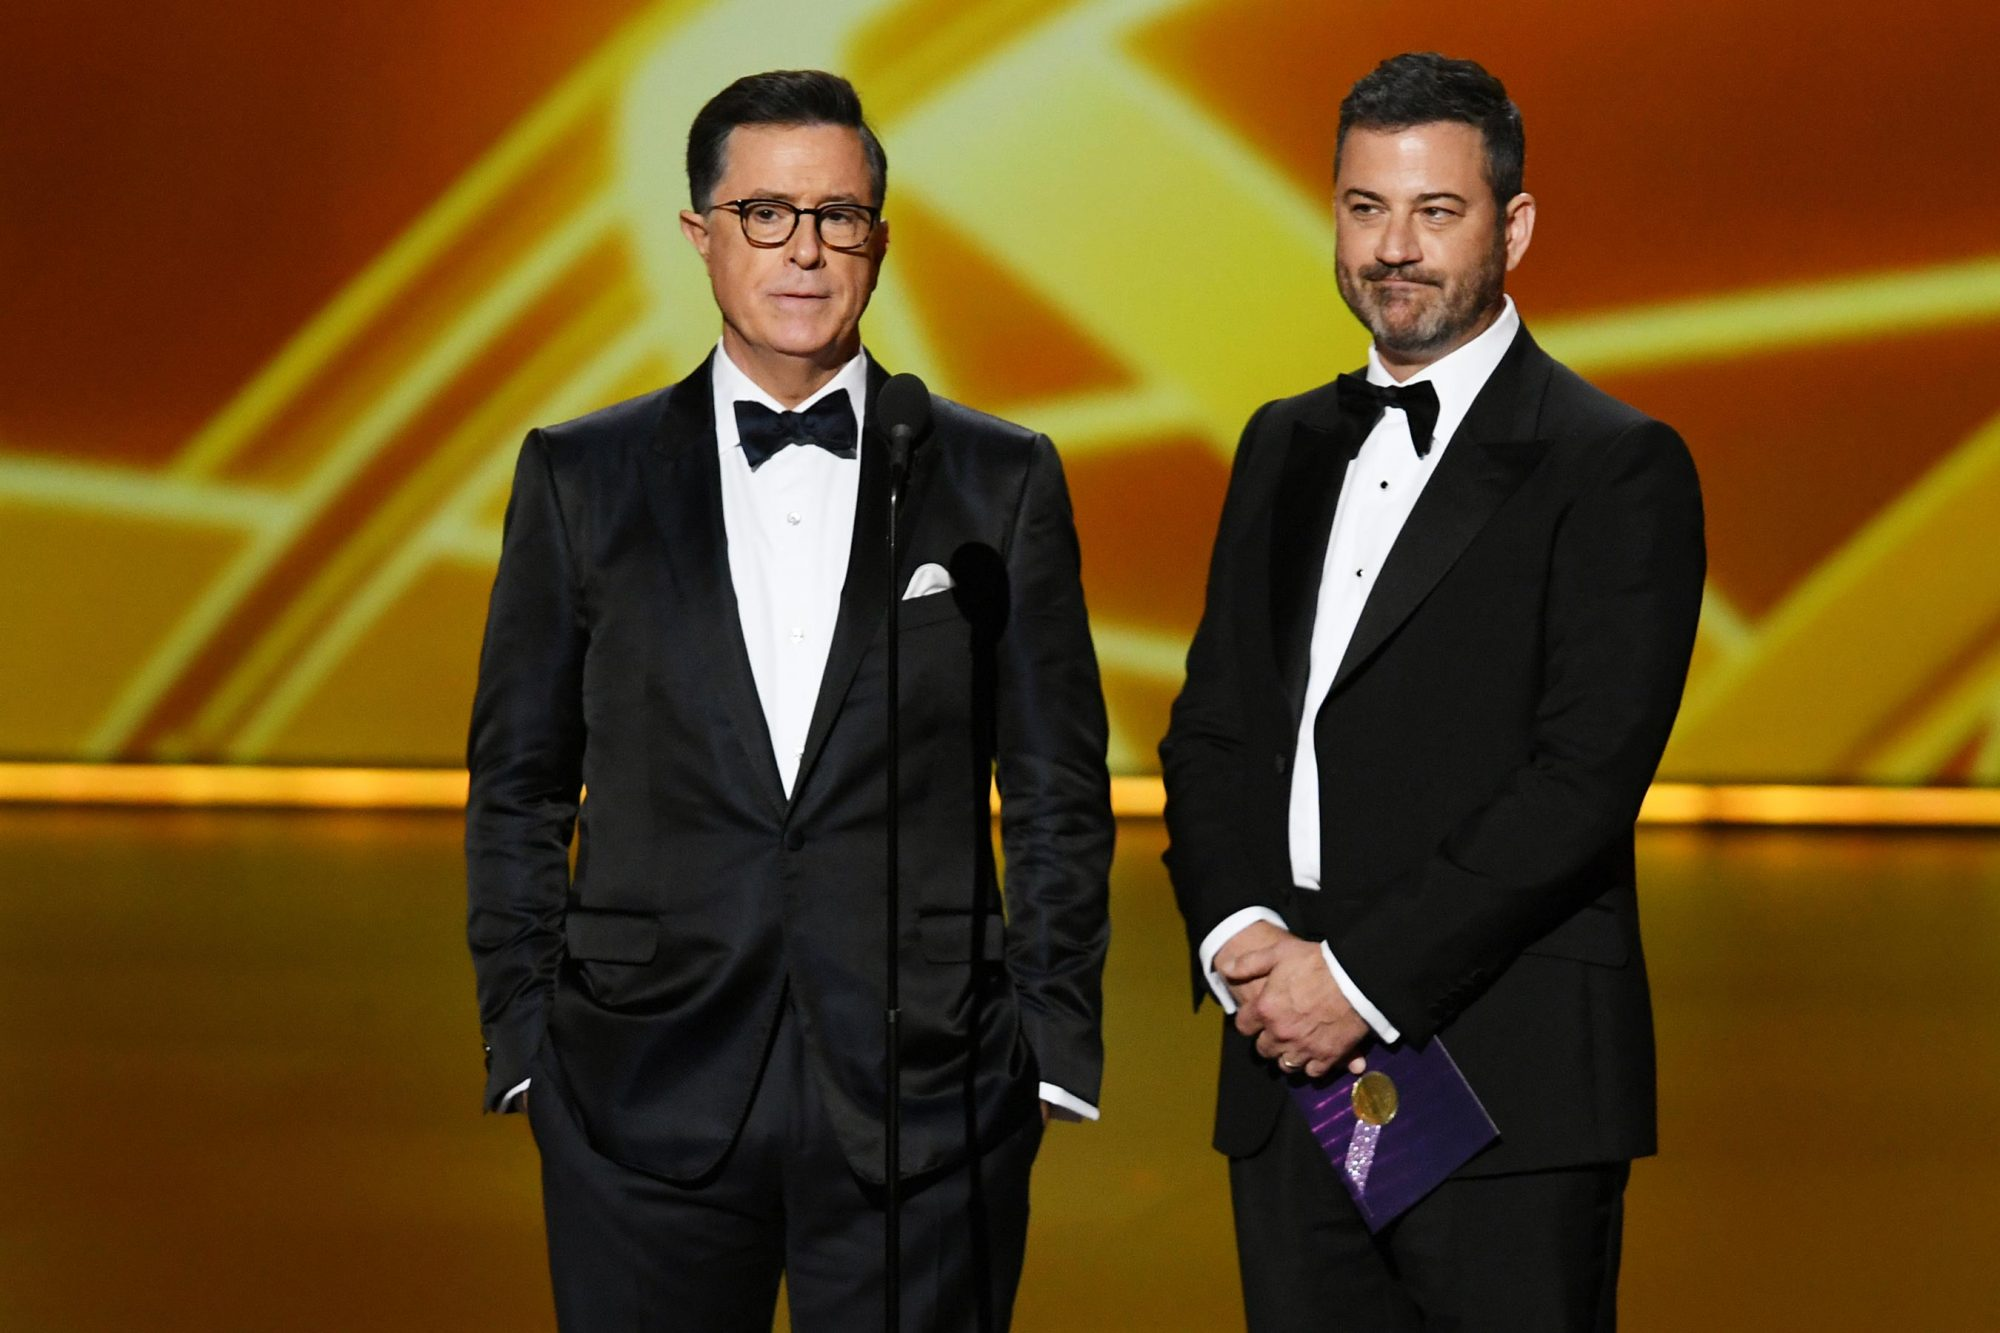 Stephen Colbert and Jimmy Kimmel prove why this show needs a host